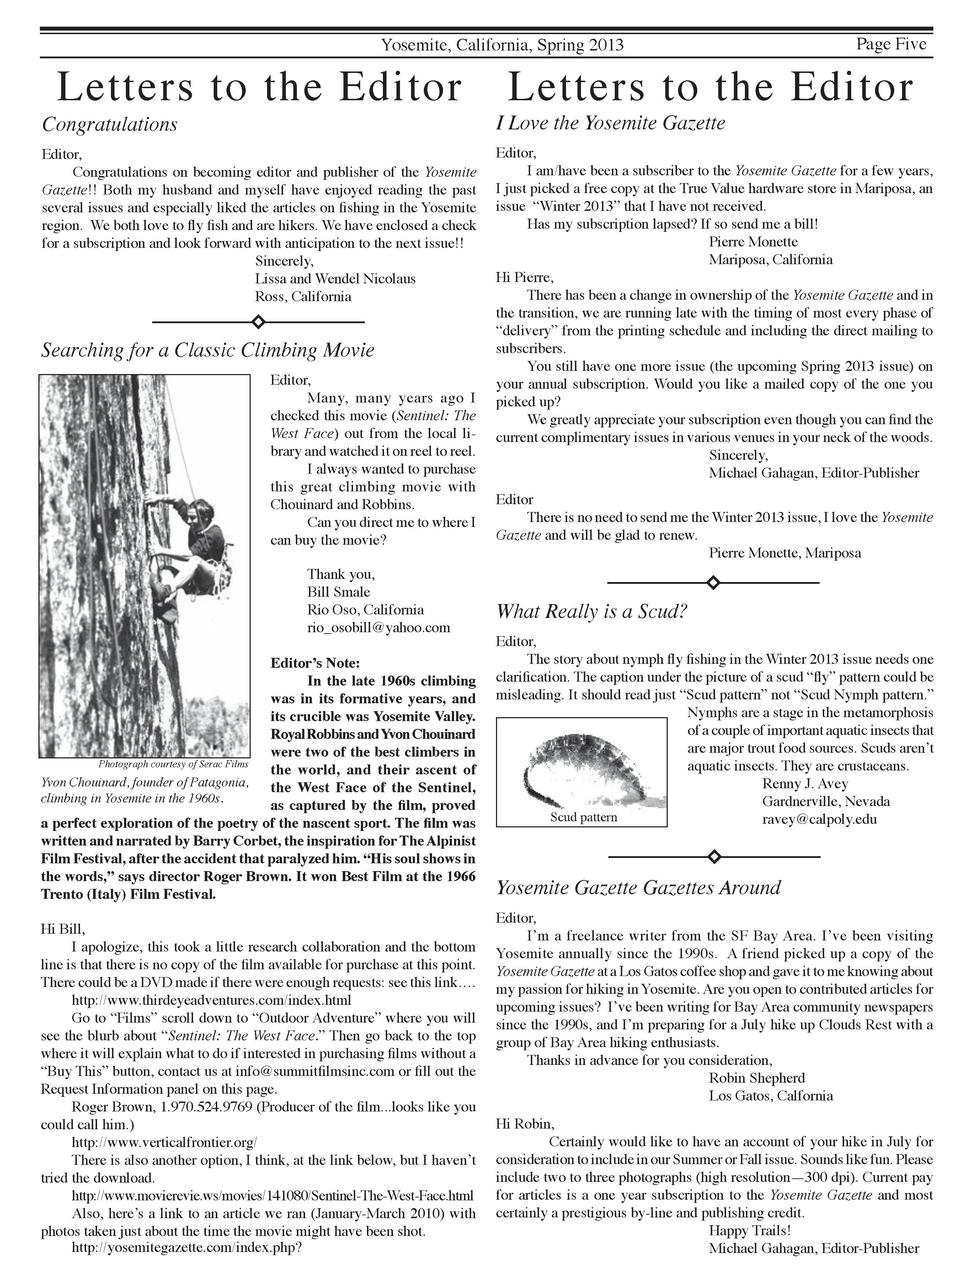 Yosemite, California, Spring 2013  Letters to the Editor  Congratulations  Editor,   Congratulations on becoming editor an...